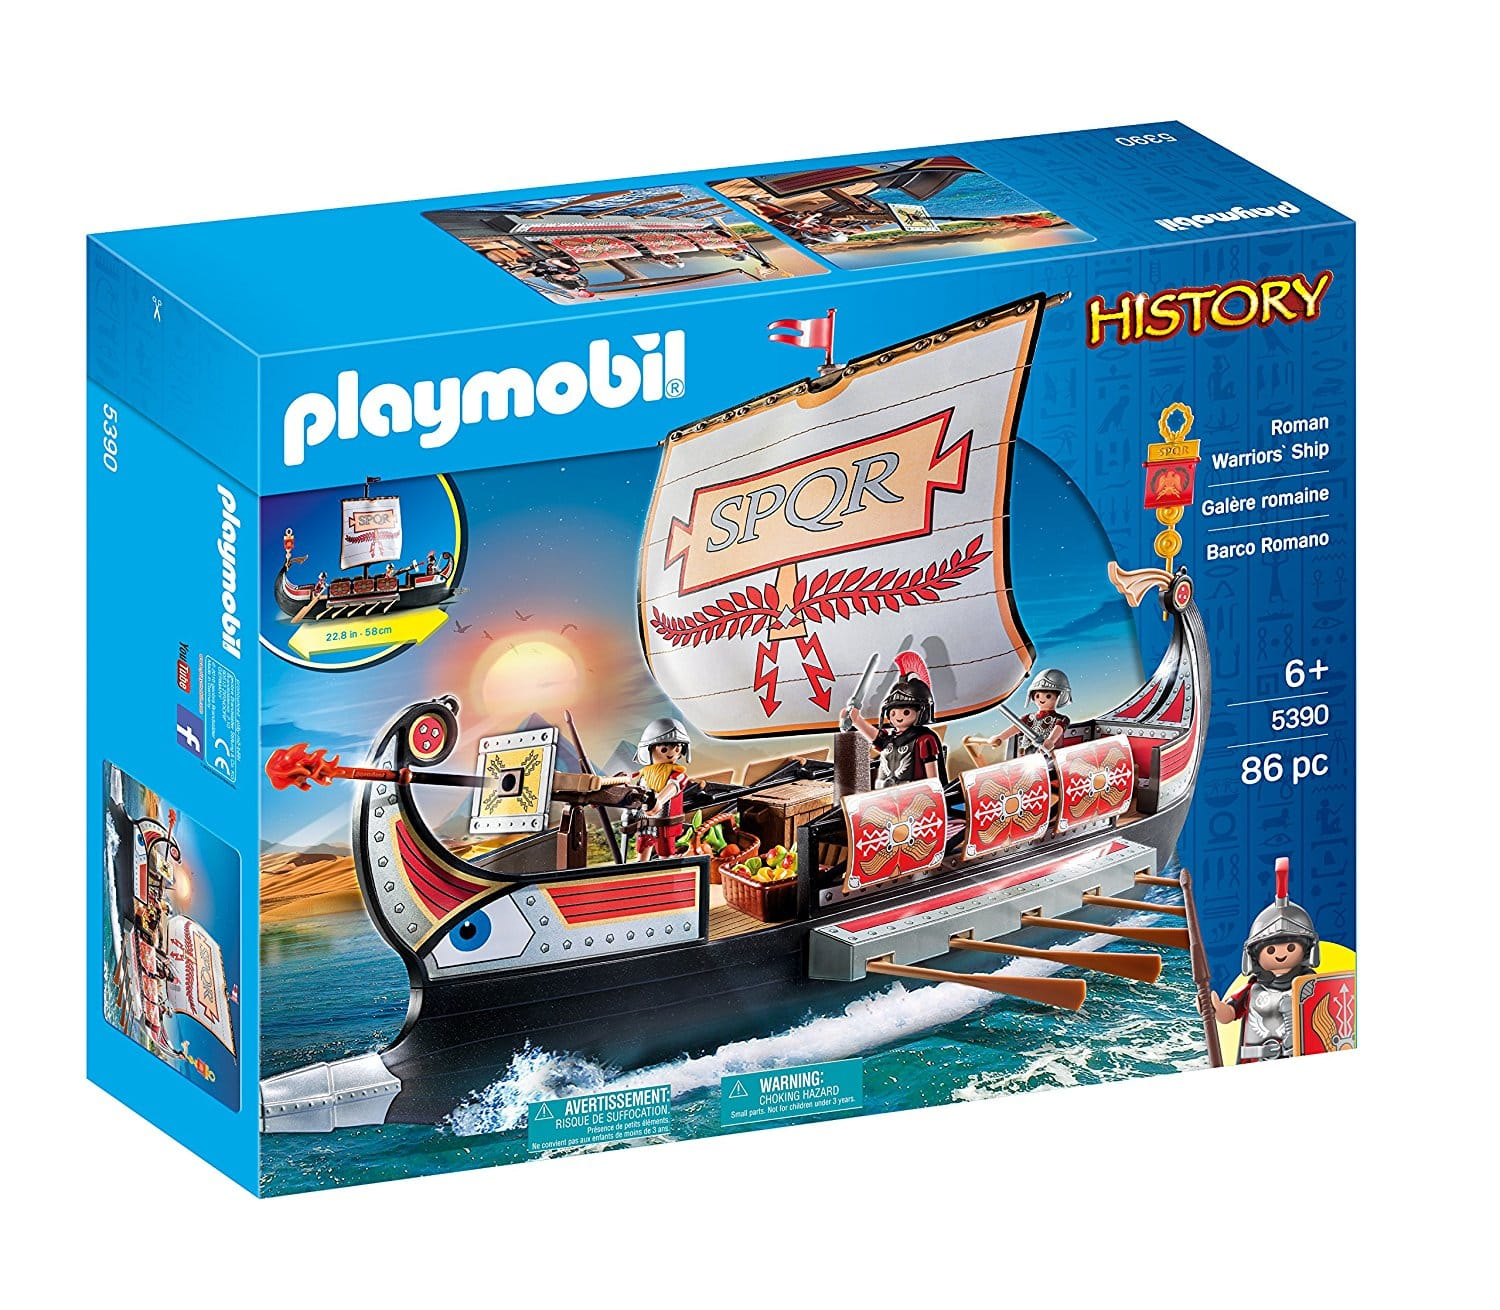 Playmobil Roman Warriors' Ship $15.30 + Free Store Pickup